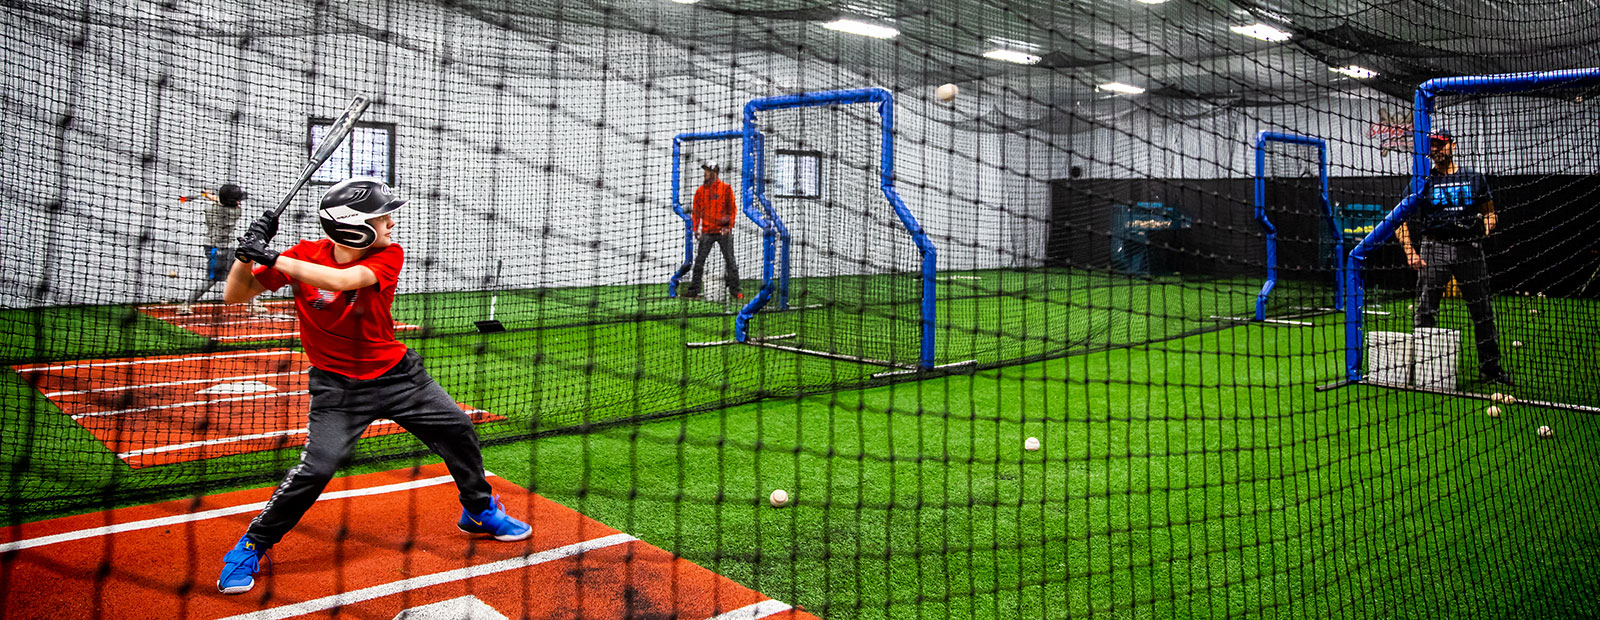 Student athletes hone their skills at Sluggers. <span class='image-credits'>David Lewinski</span>